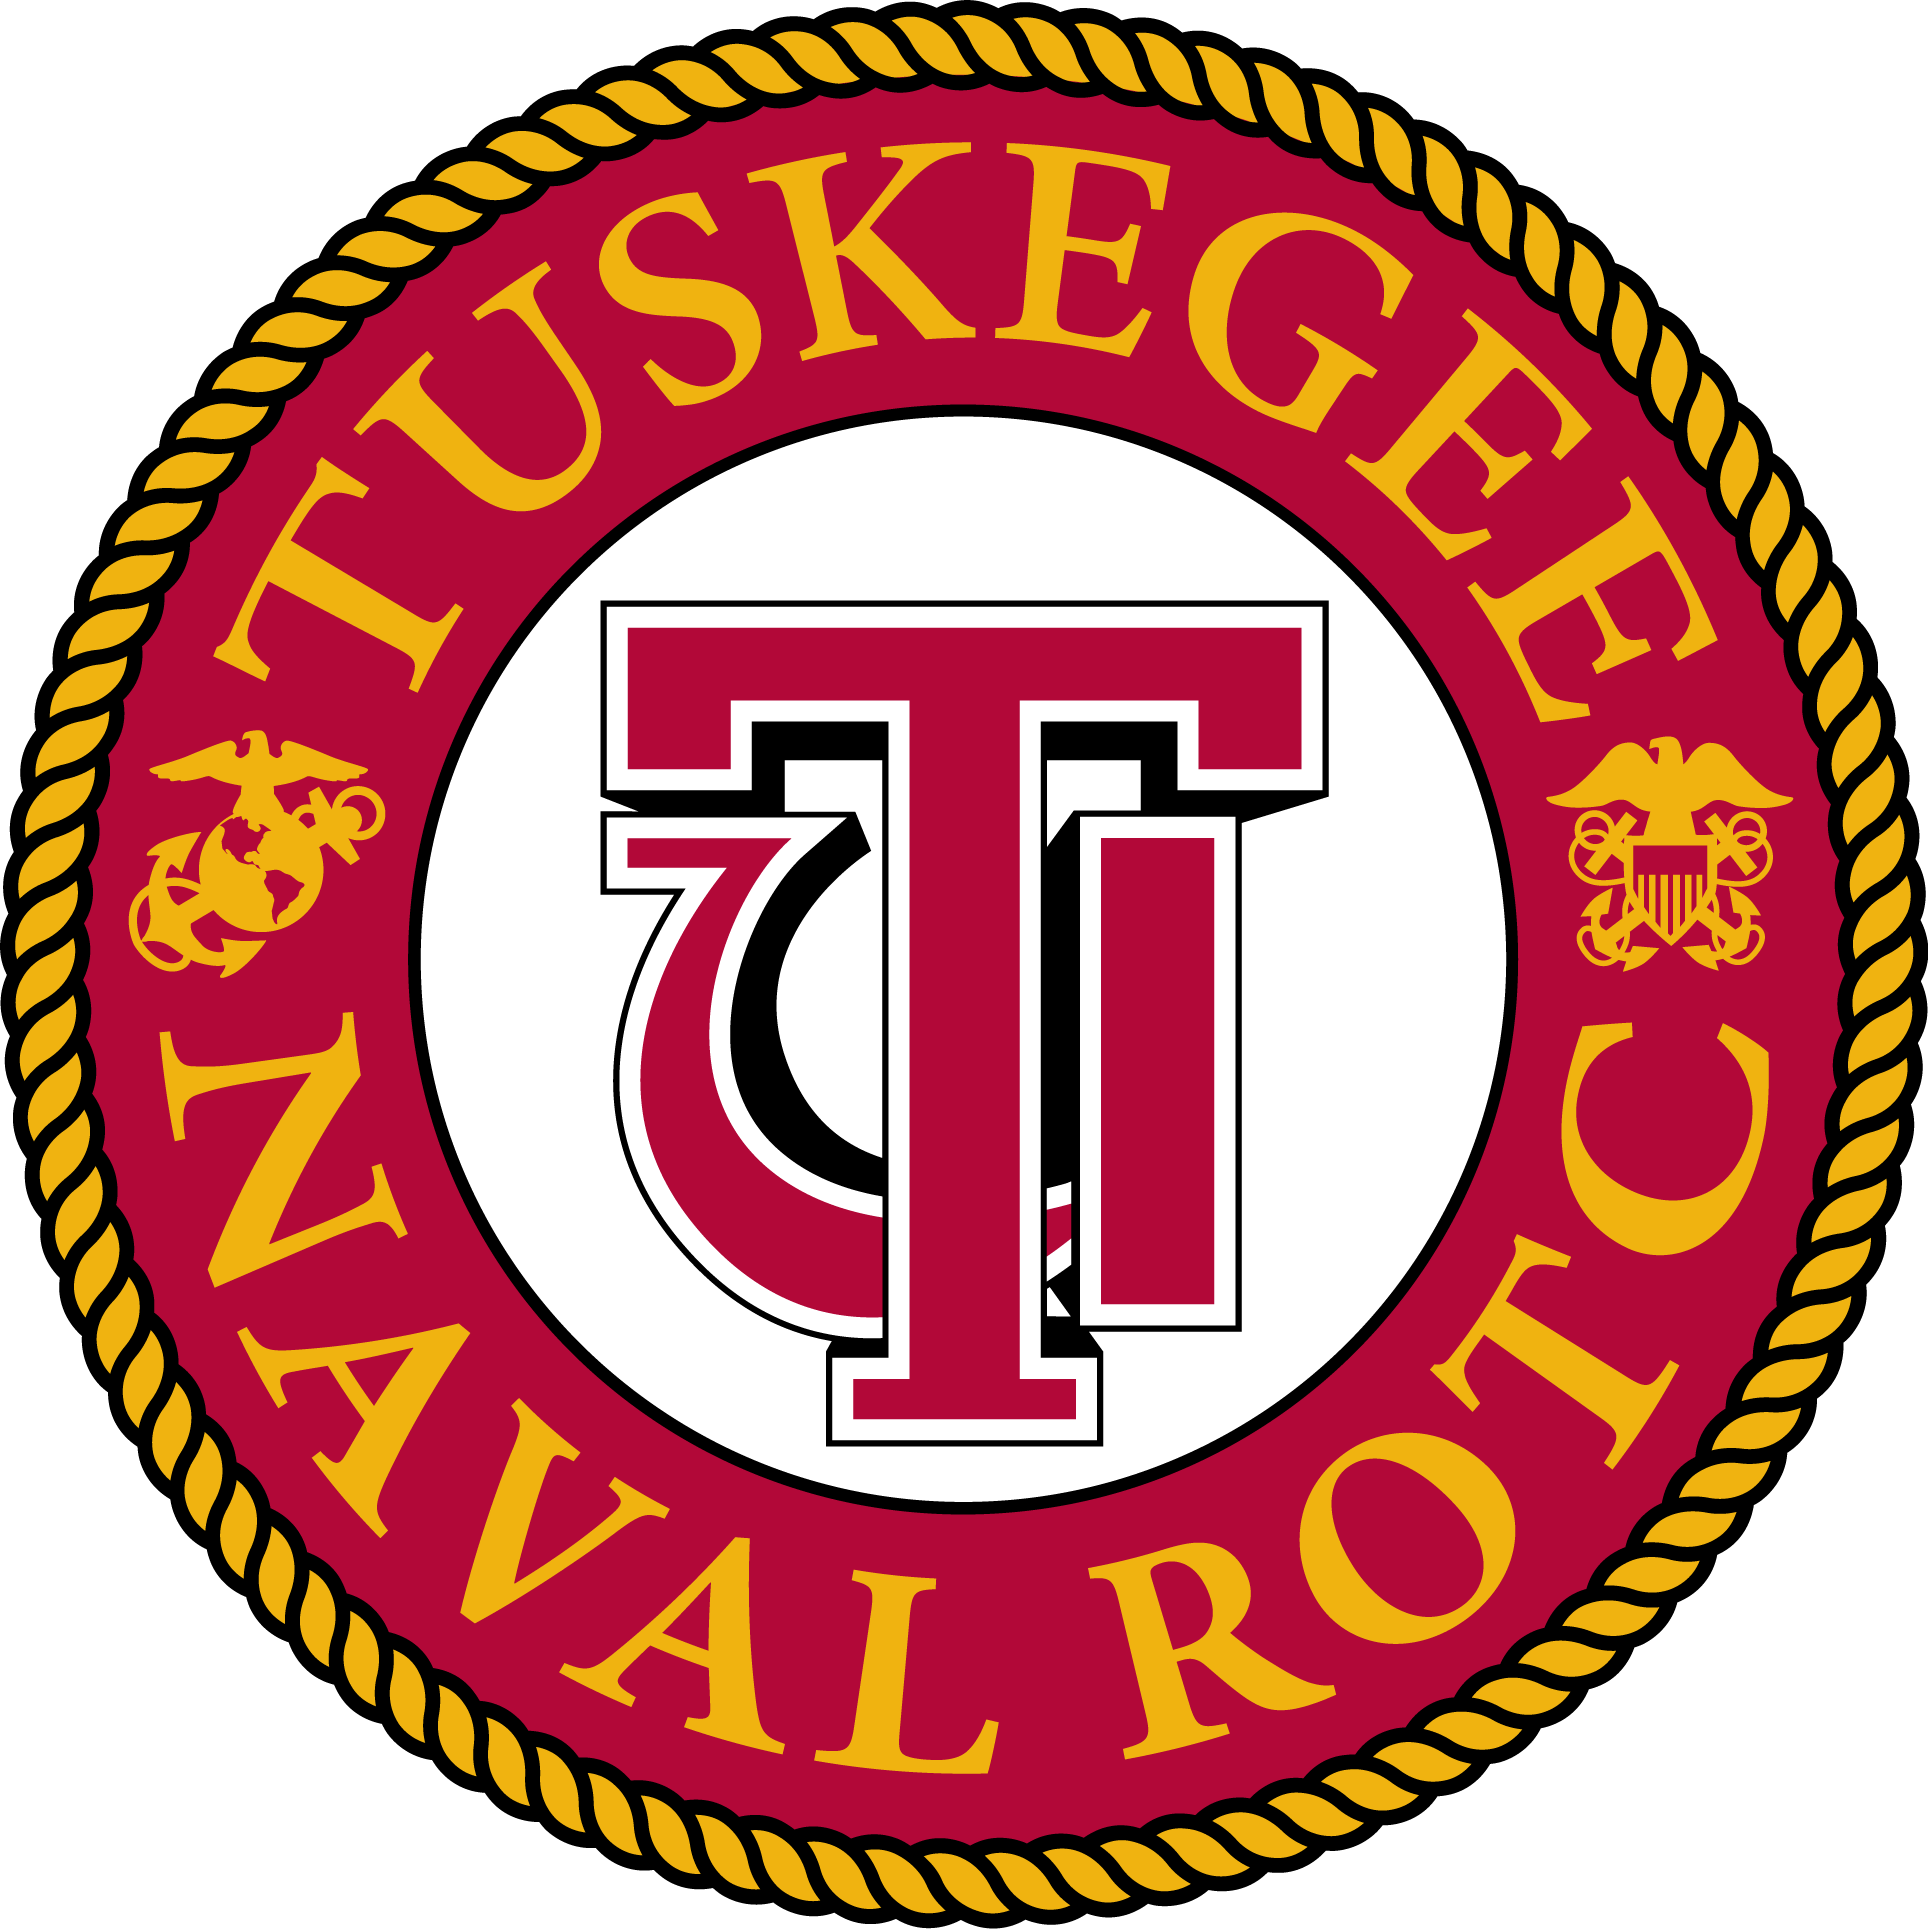 Tuskegee tiger logo black and white clipart png png freeuse Tuskegee University   Overview   Plexuss.com png freeuse